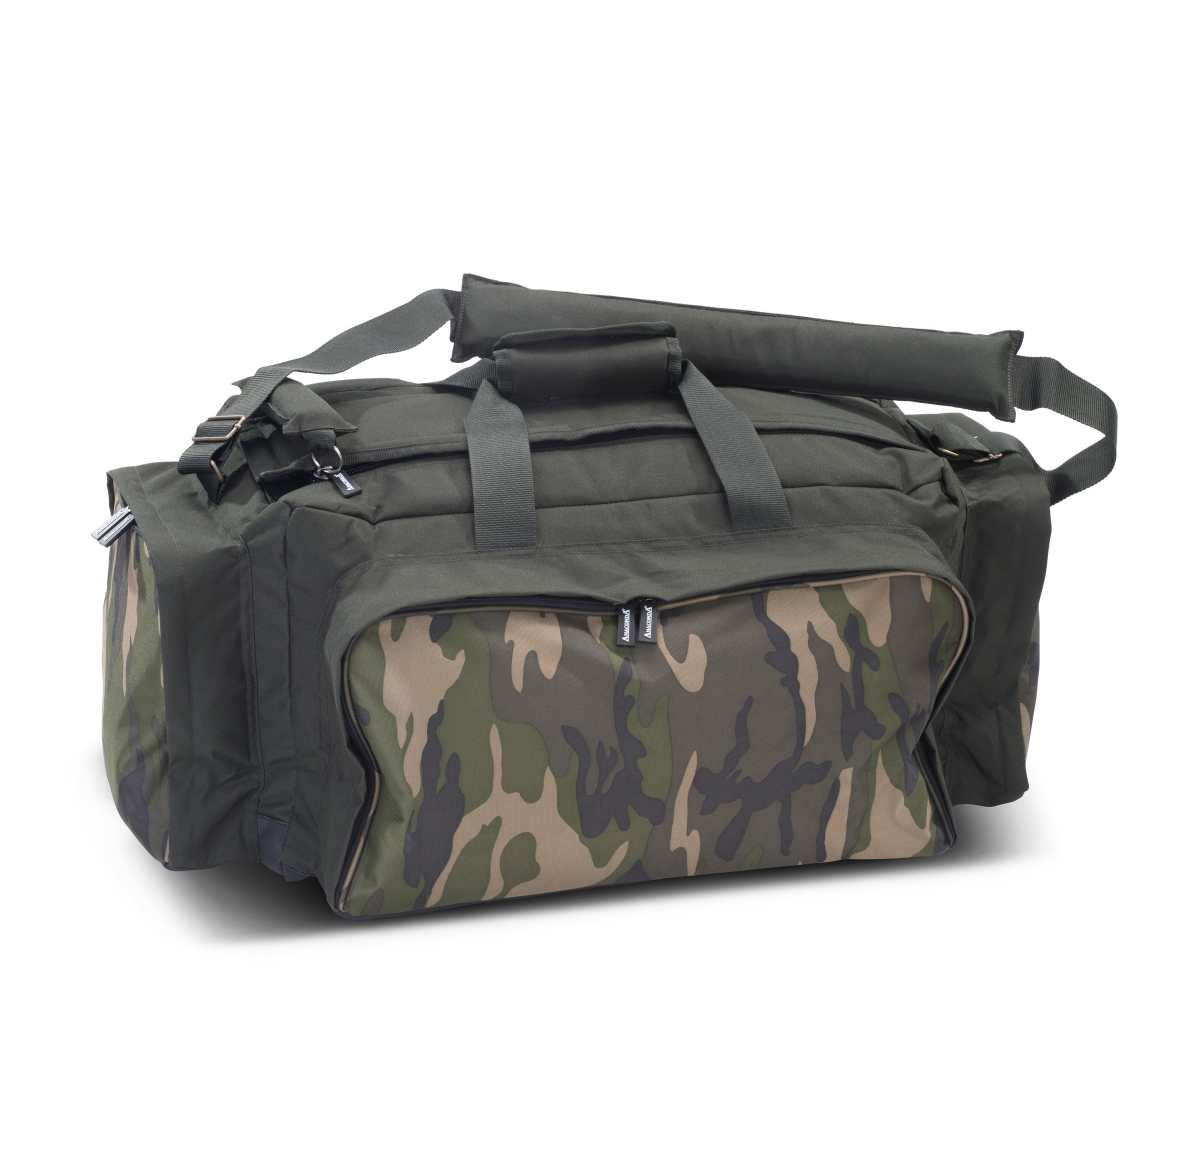 Anaconda Undercover Gear Bag L